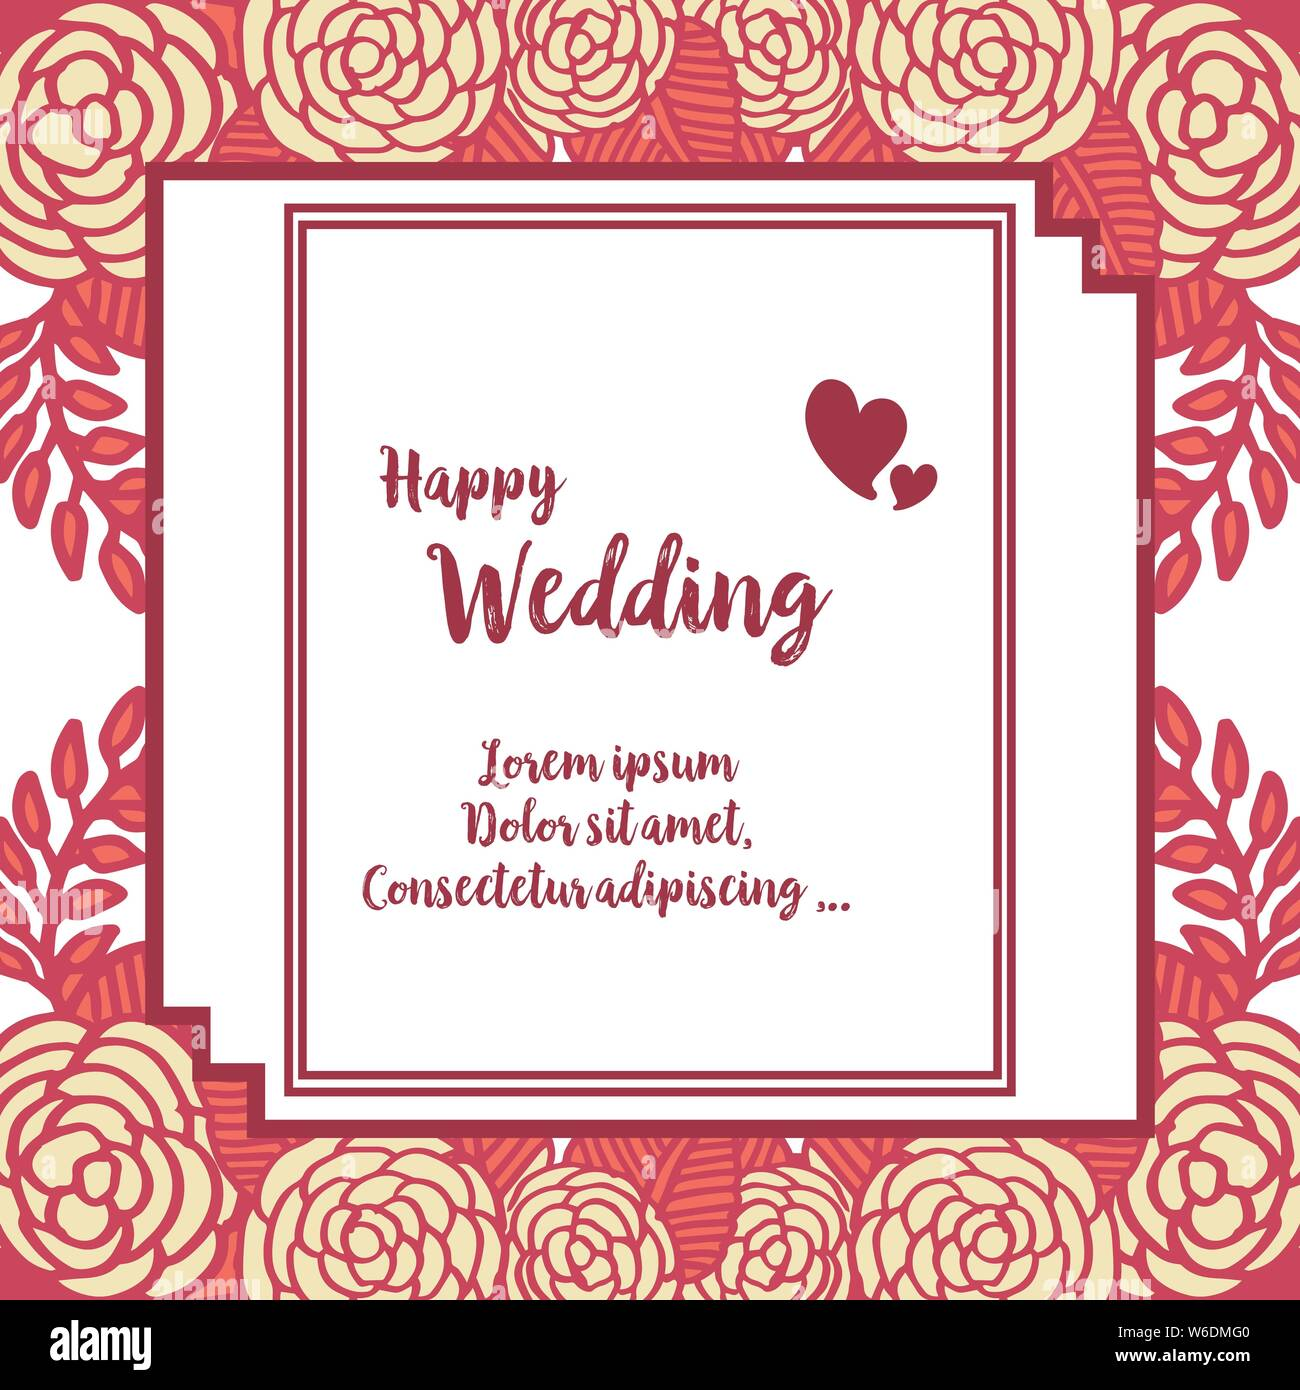 Abstract Design Of Flower Frame Lettering Of Happy Wedding